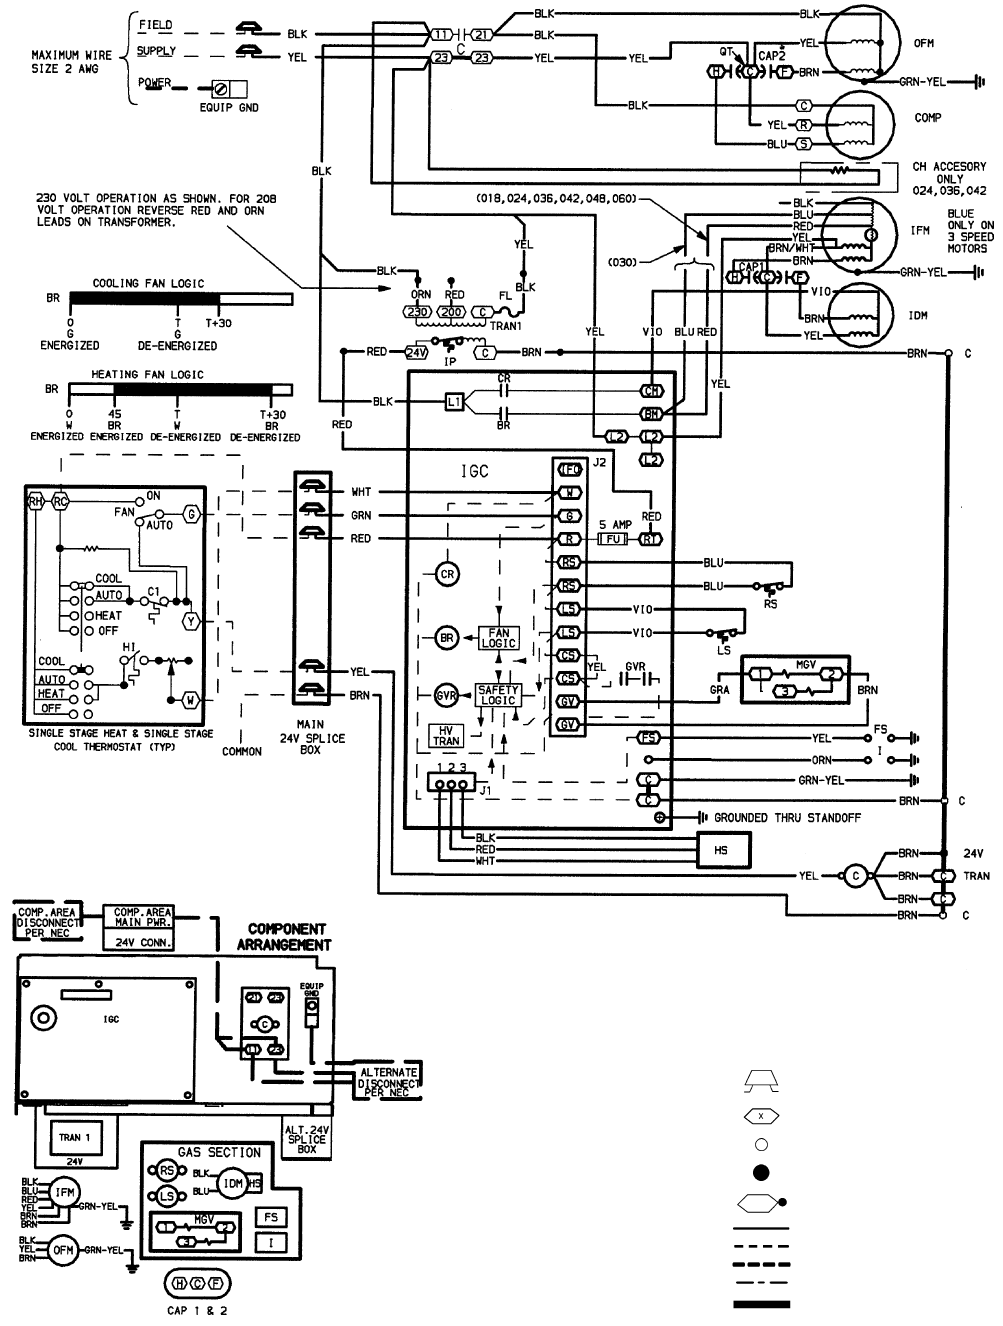 Bryant 588a 589a Fig 26 208 230 1 60 Wiring Diagram Units 588a018 060 Air Conditioner